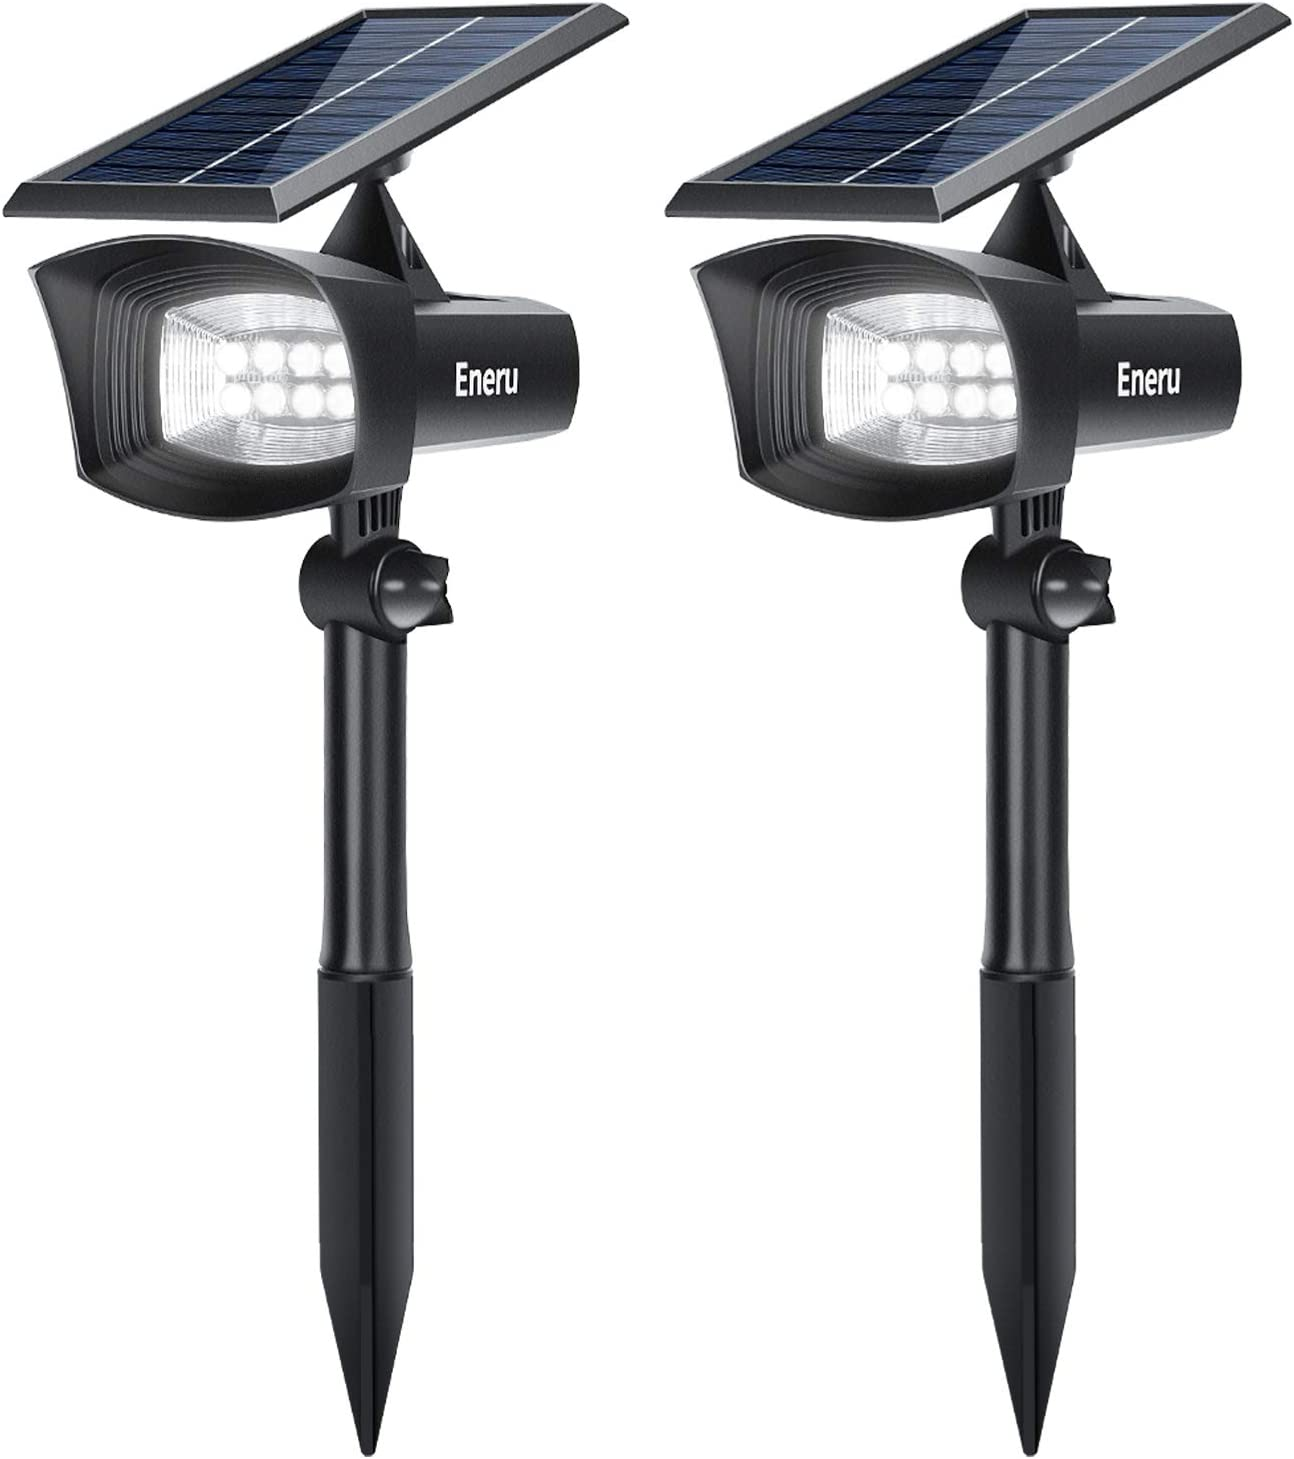 Eneru Solar Spot Lights Outdoor, LED Solar Spotlights PRO Solar Powered Landscape Lighting IP65 Waterproof Dusk to Dawn for Garden Pathway Yard Driveway Garage 2 Pack Cold White